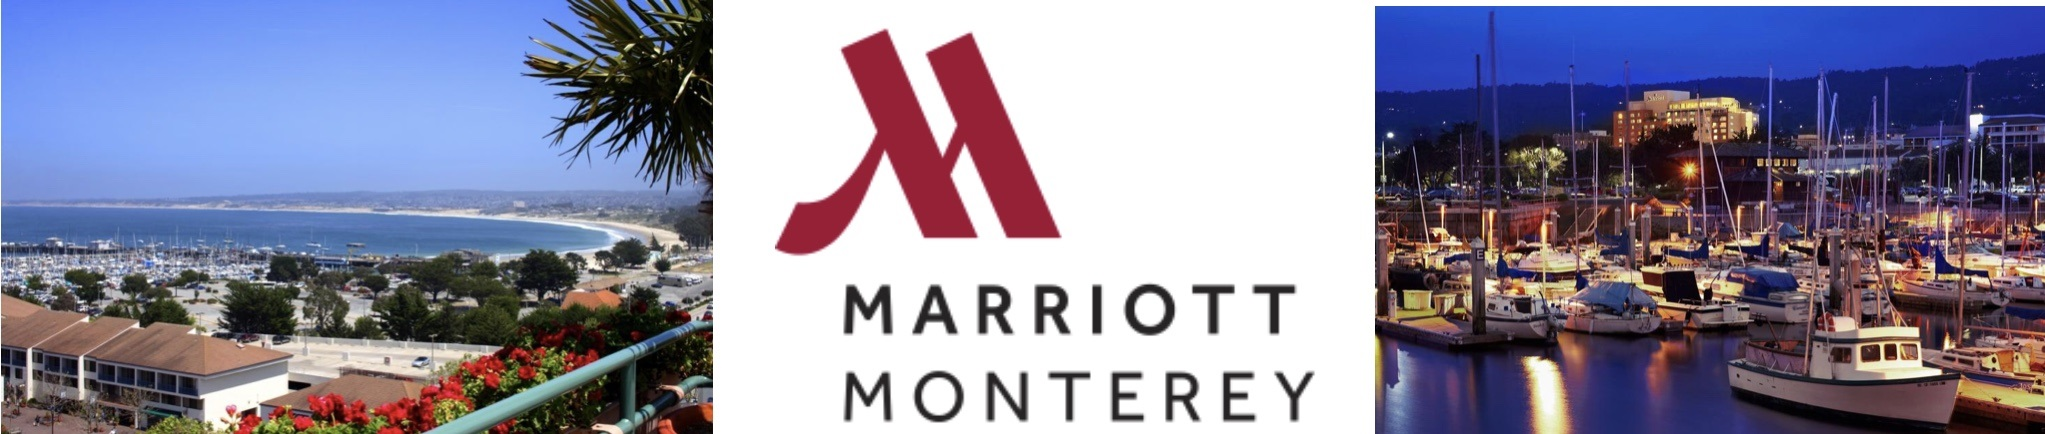 Marriott Header